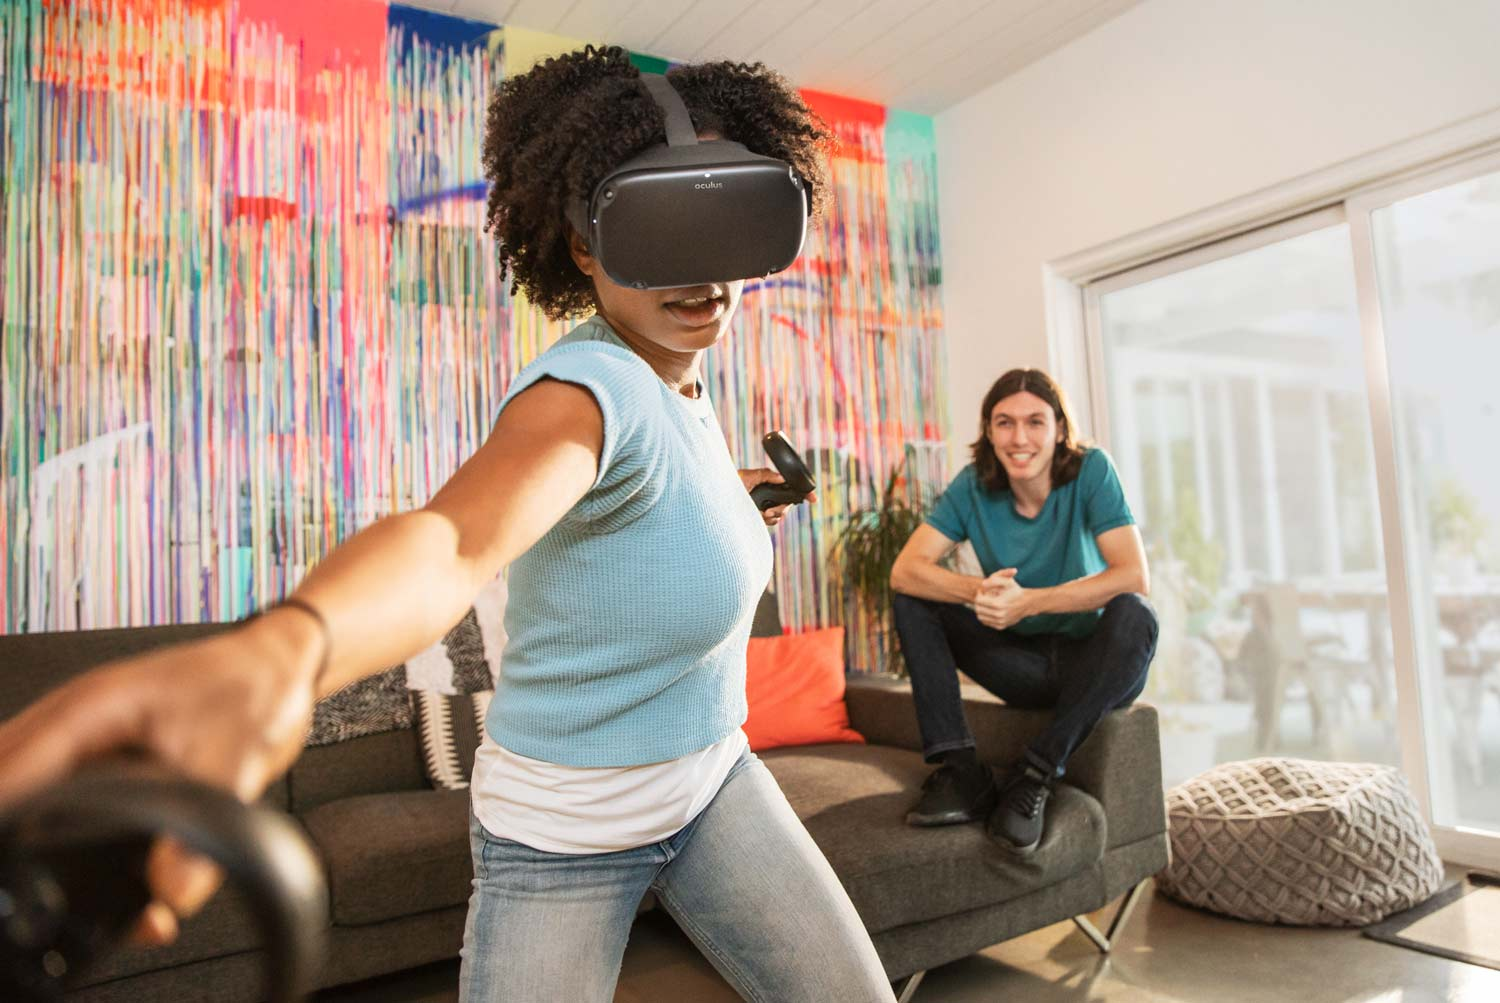 VR industry, VR, brian fargo, The Mage's Tale, Quest